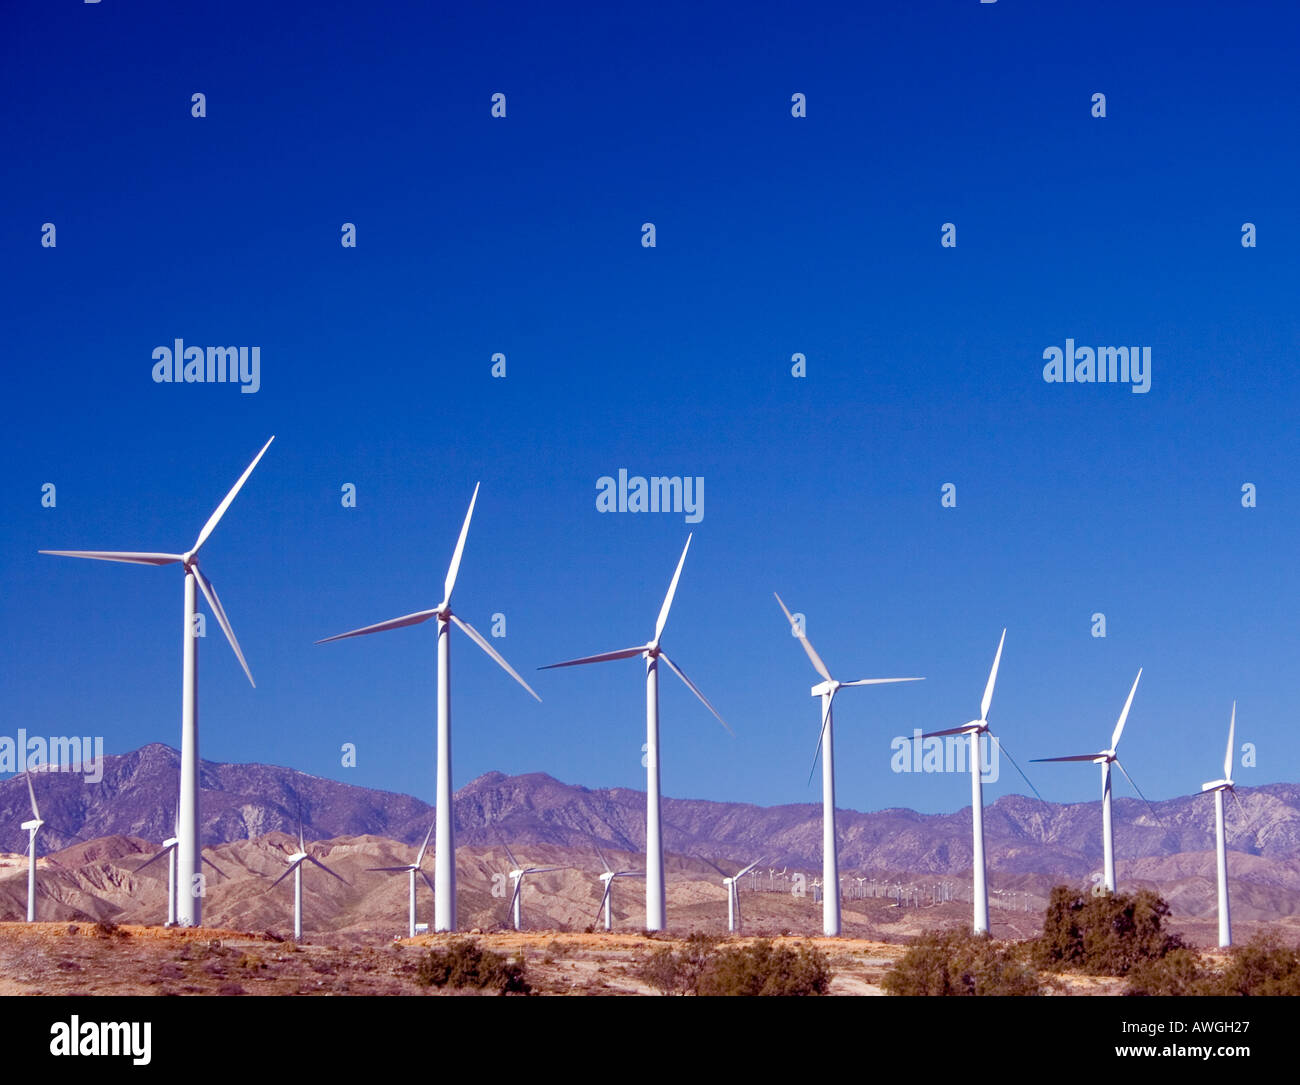 A windmill farm in the desert near Palm Springs California - Stock Image